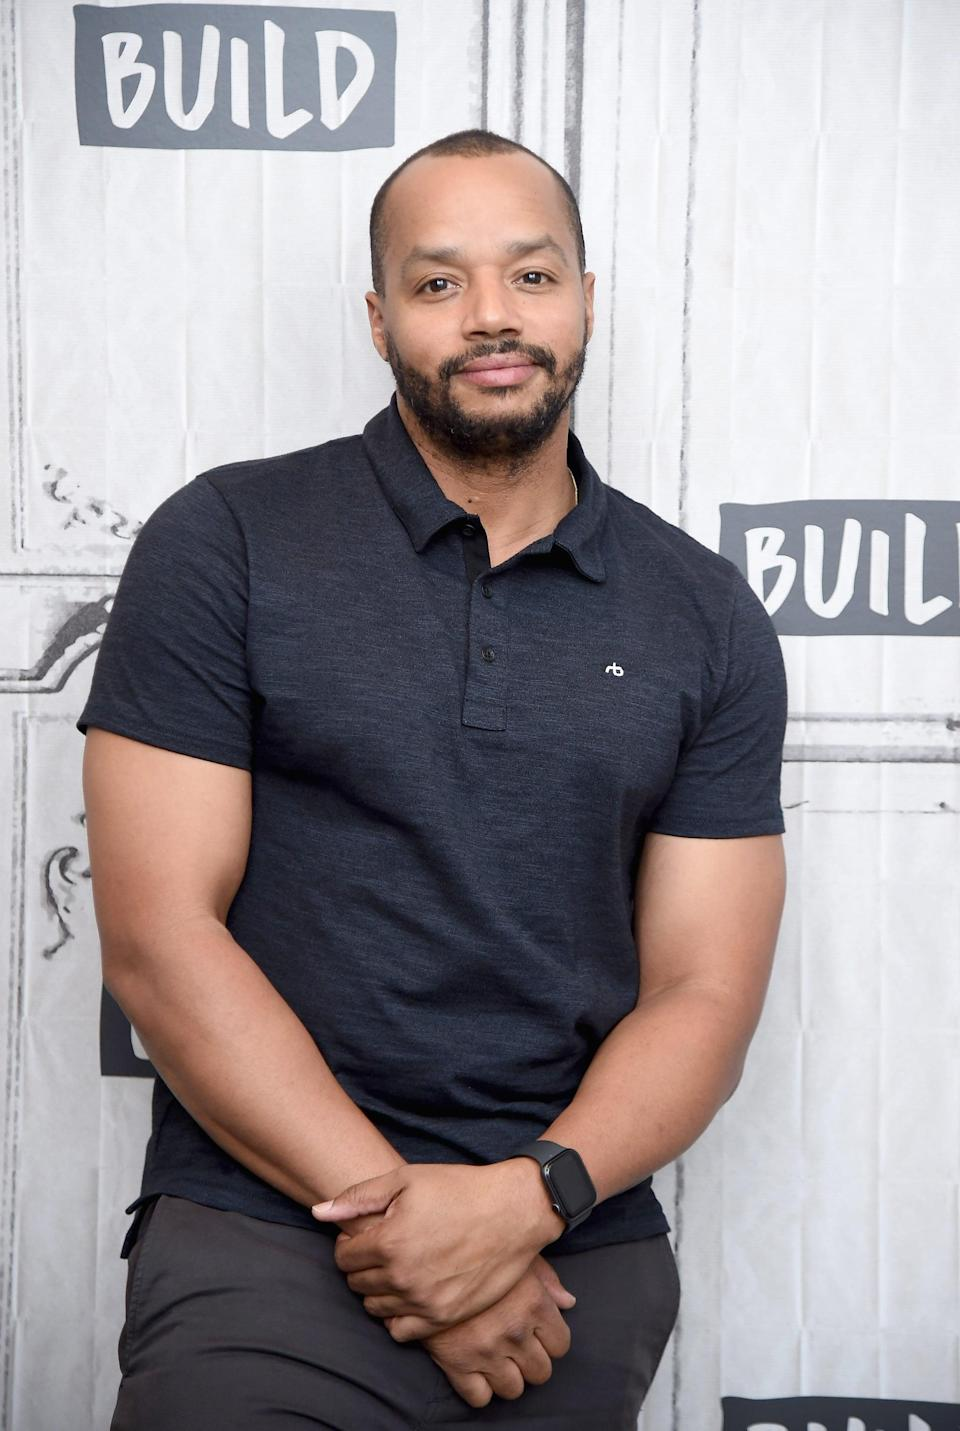 <p>Faison went straight from <strong>Scrubs</strong> to another TV sitcom: <strong>The Exes</strong>, a TVLand comedy which ran from 2011 to 2015. More recently, he joined the voice cast of <strong>Star Wars Resistance</strong> as pilot Hype Fazon (named especially for him!) and was a series regular on the ABC paranormal drama <strong>Emergence</strong> from 2019 to 2020.</p>